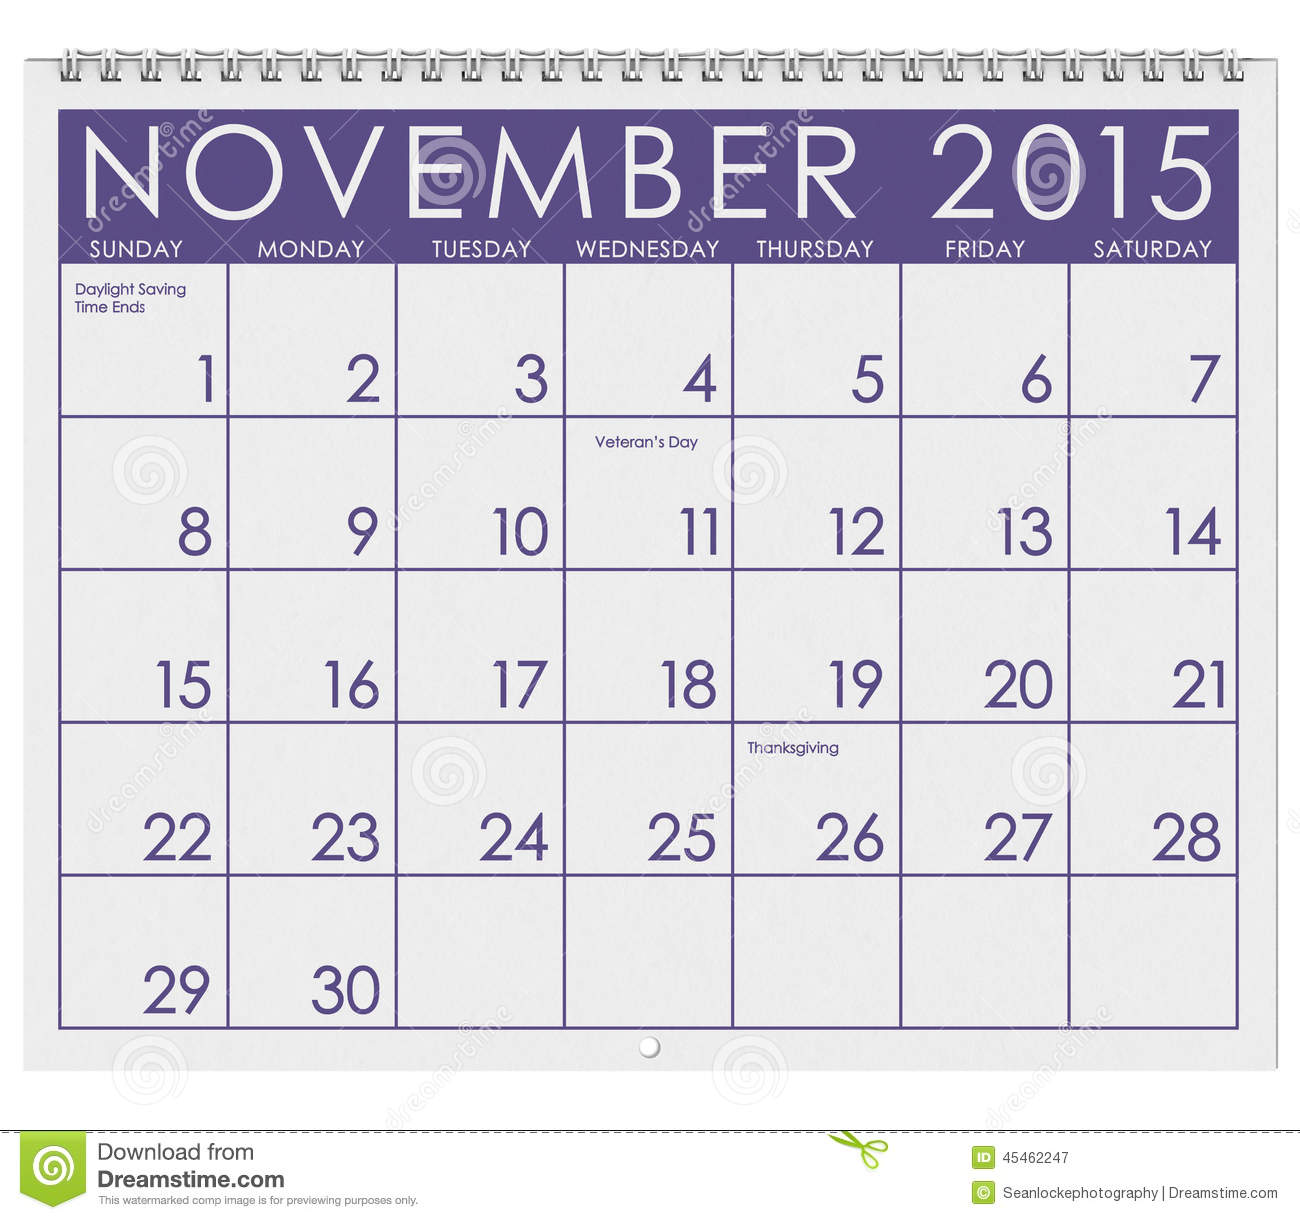 2015 Calendar: Month Of November Stock Illustration - Image: 45462247